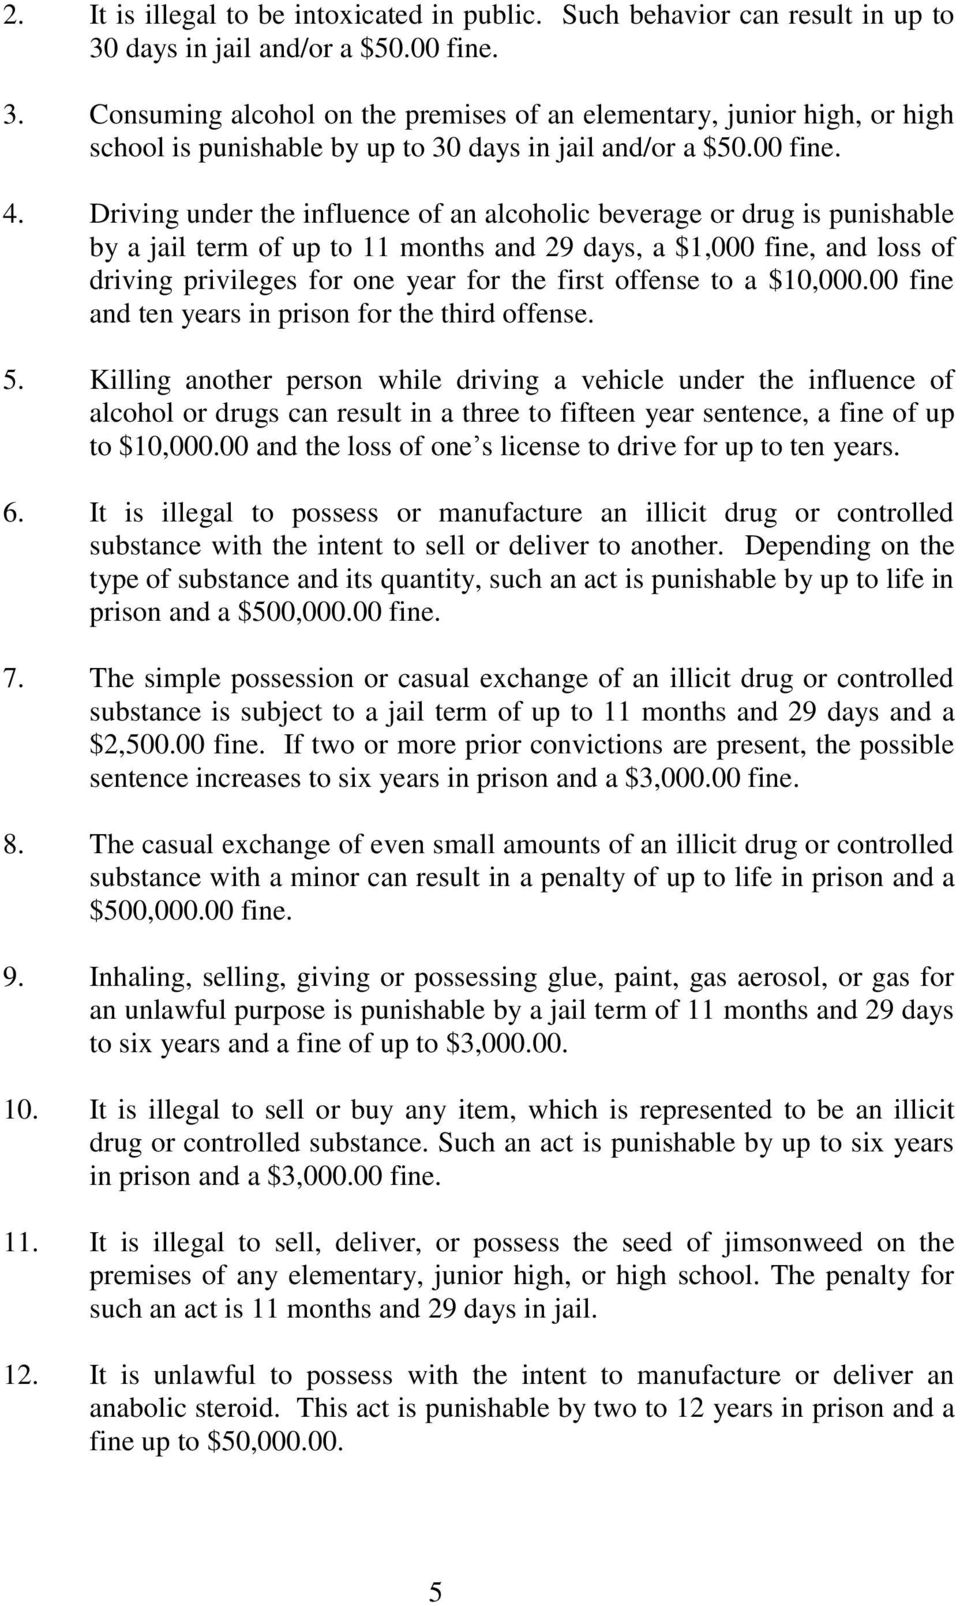 Driving under the influence of an alcoholic beverage or drug is punishable by a jail term of up to 11 months and 29 days, a $1,000 fine, and loss of driving privileges for one year for the first